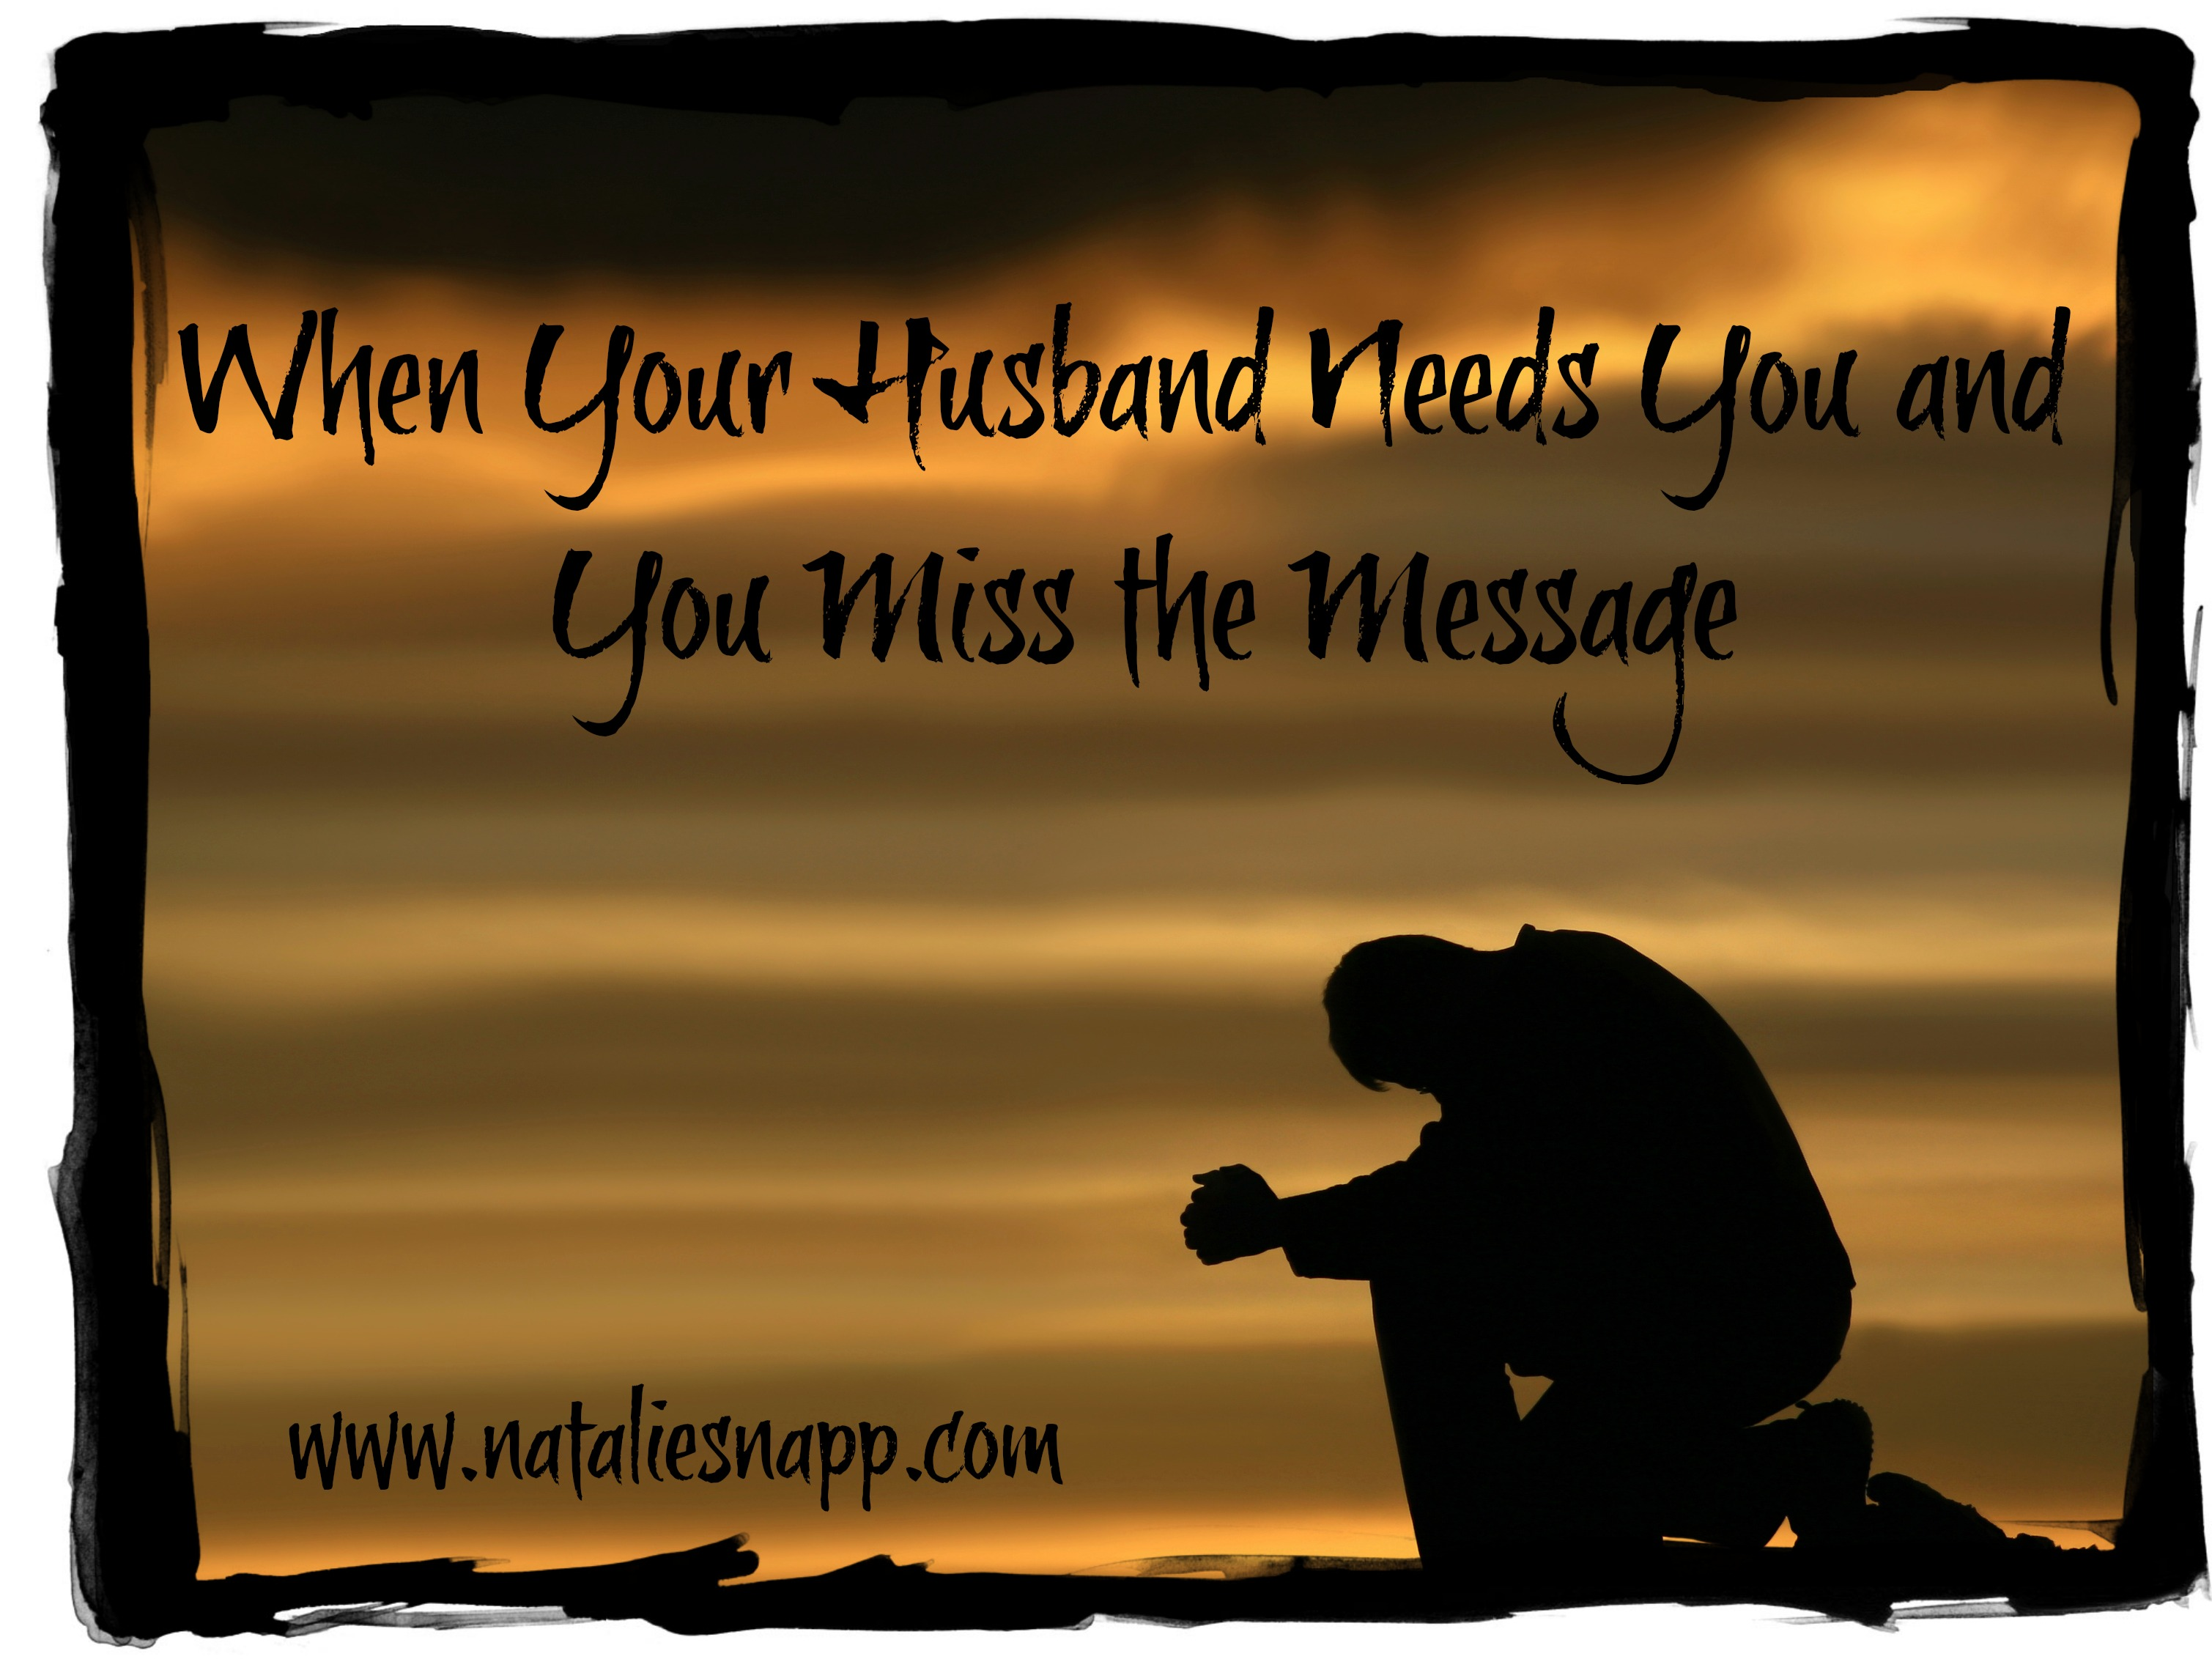 When Your Husband Needs You and You Miss the Message